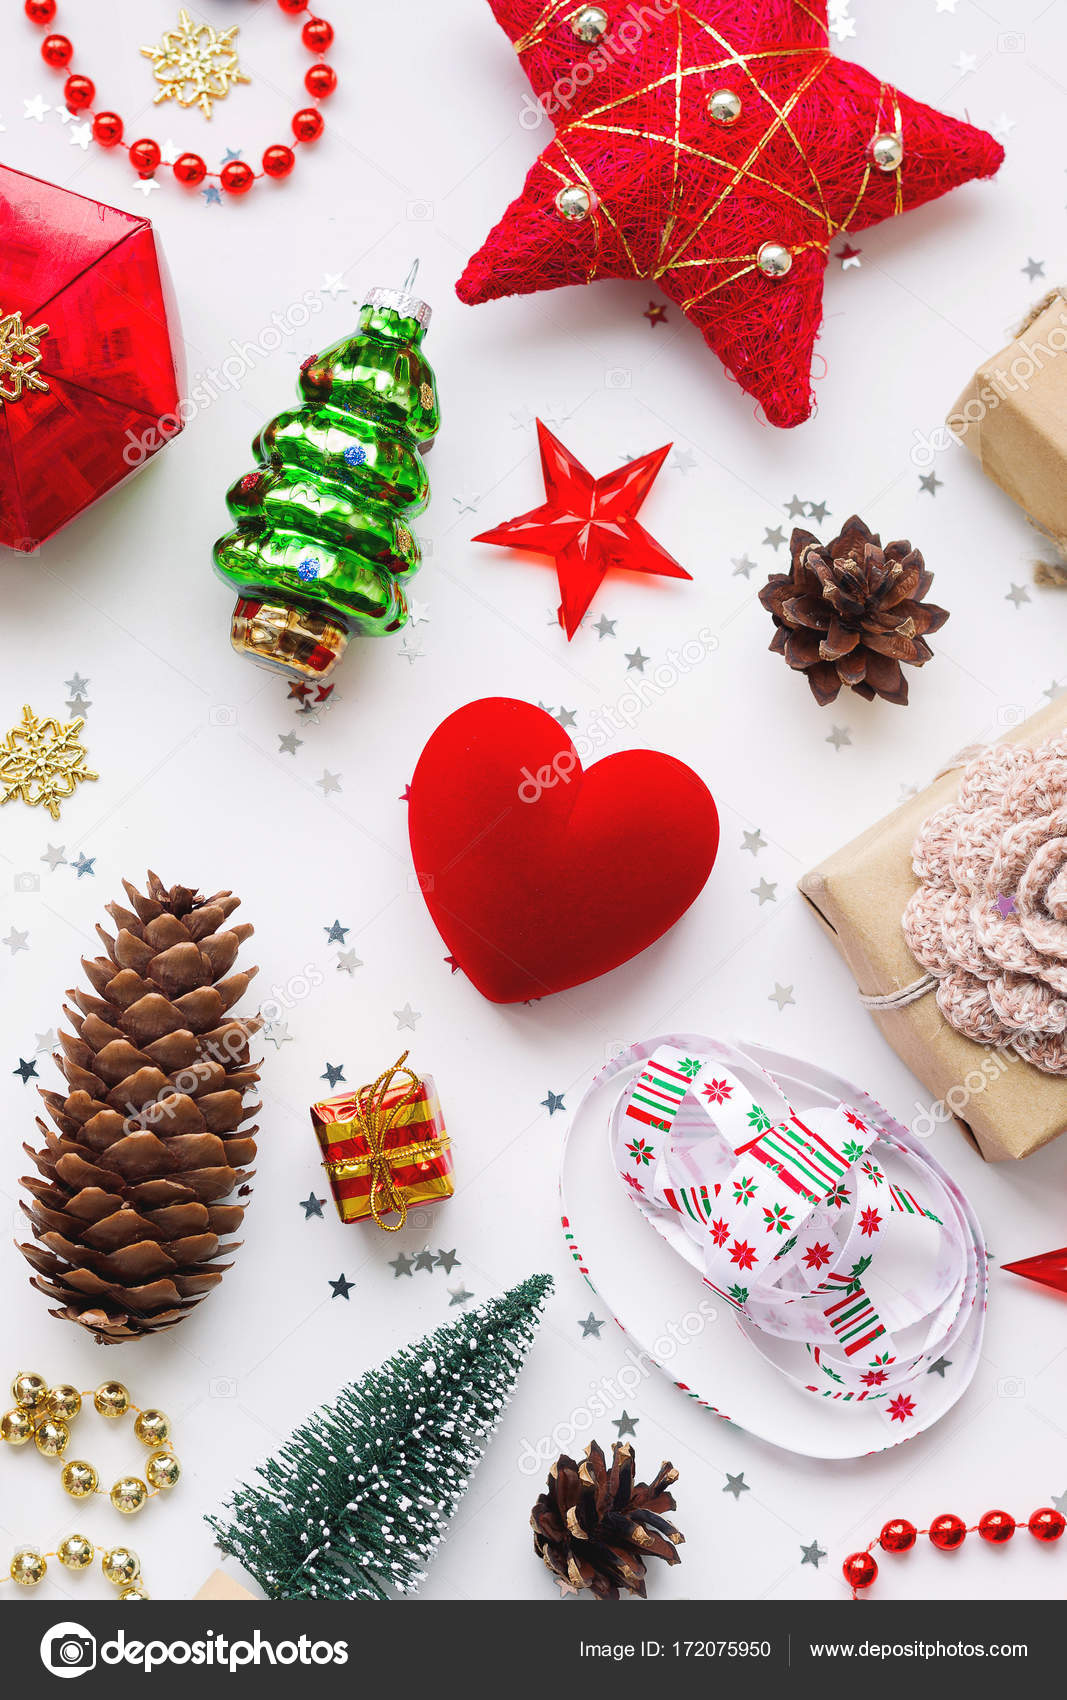 Christmas Background With Decorations New Year Symbol Decorative